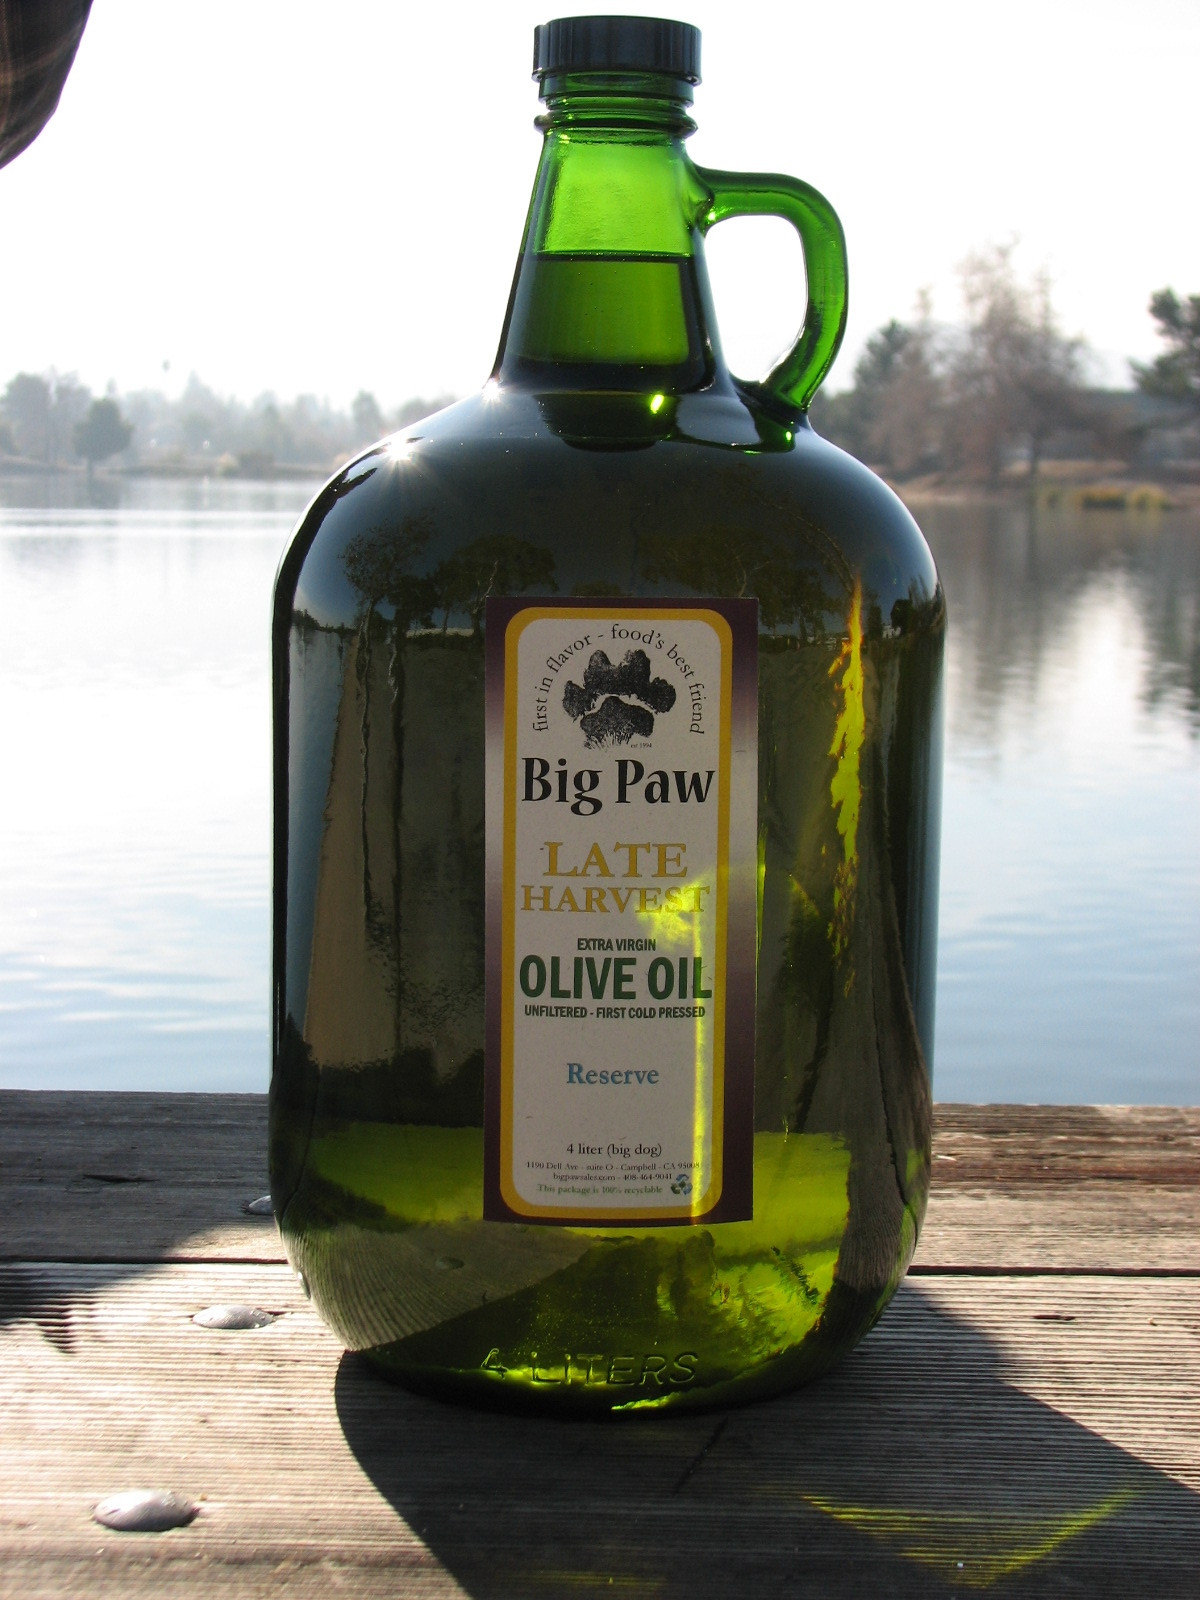 Late Harvest Extra Virgin Olive Oil - 4 liter FREE SHIPPING